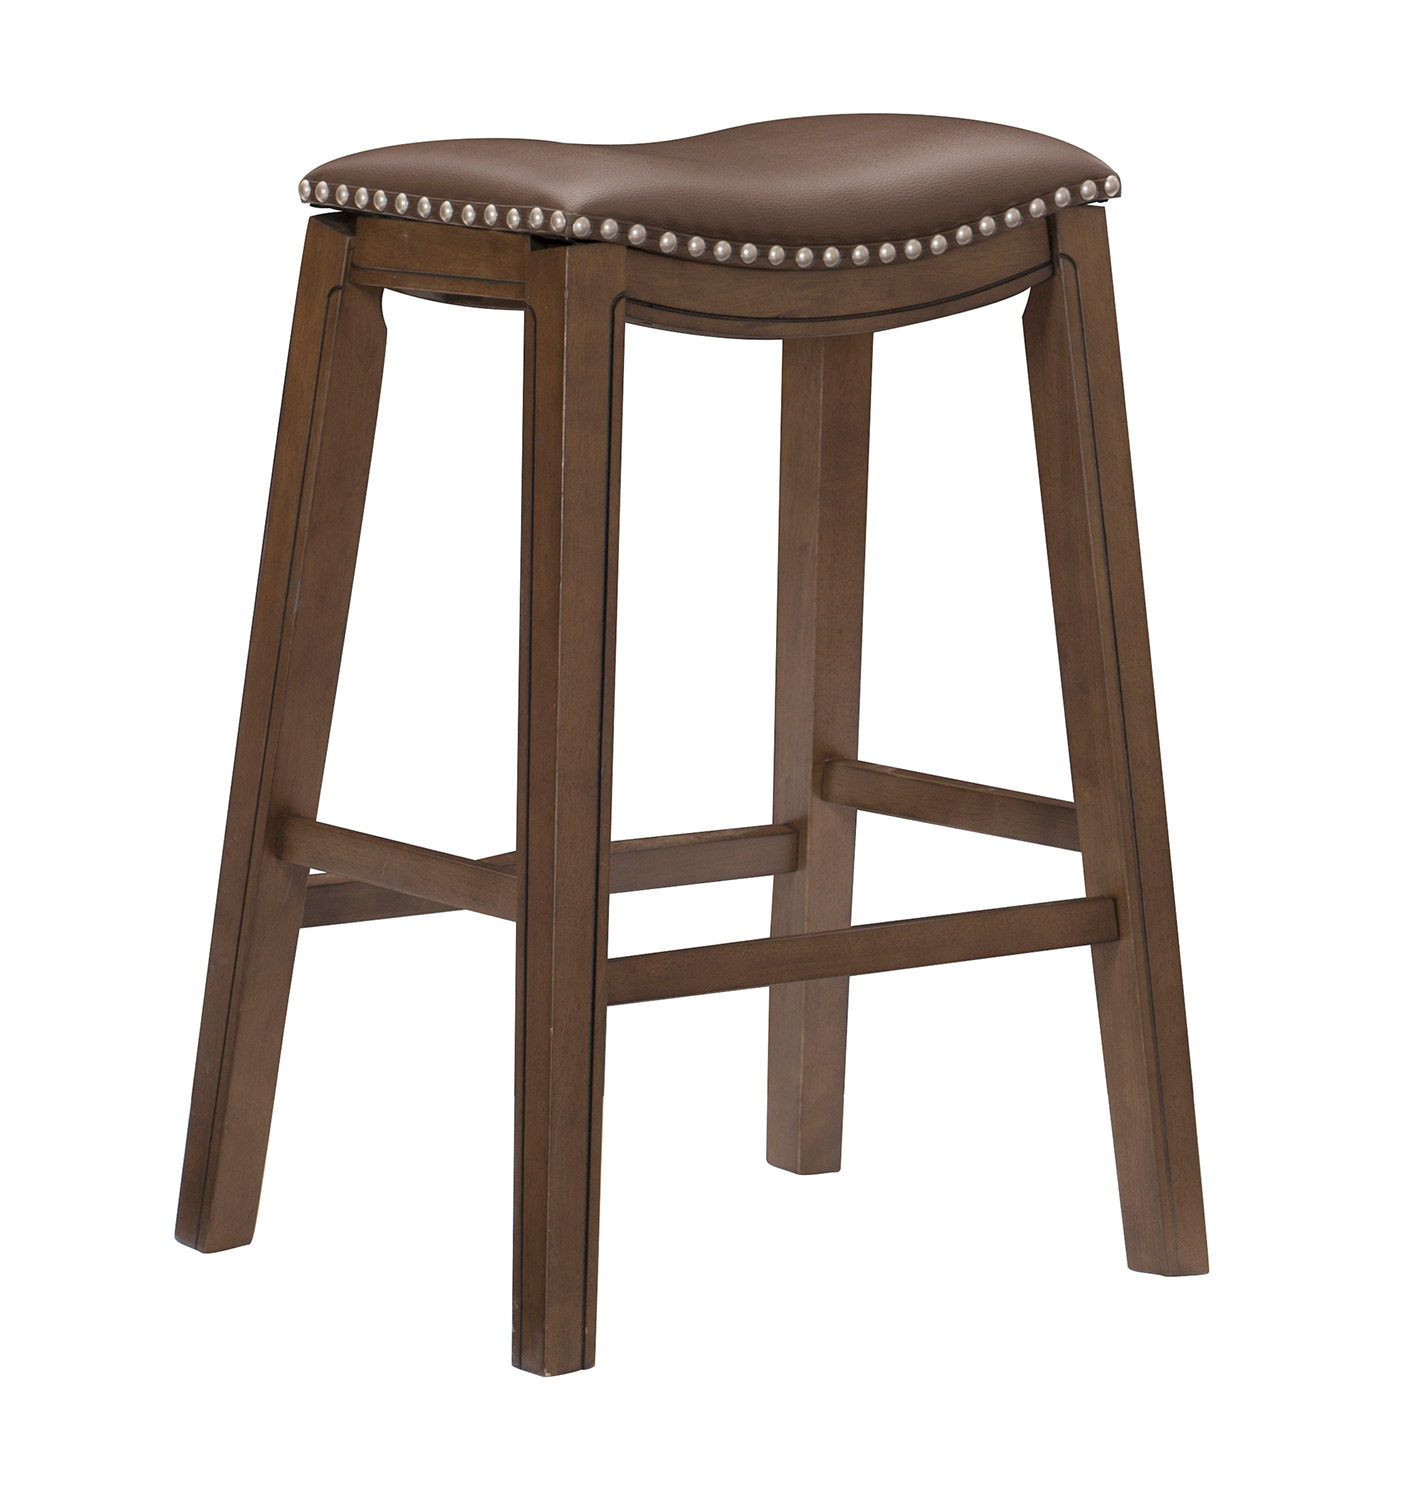 Homelegance 29 SH Stool - Brown